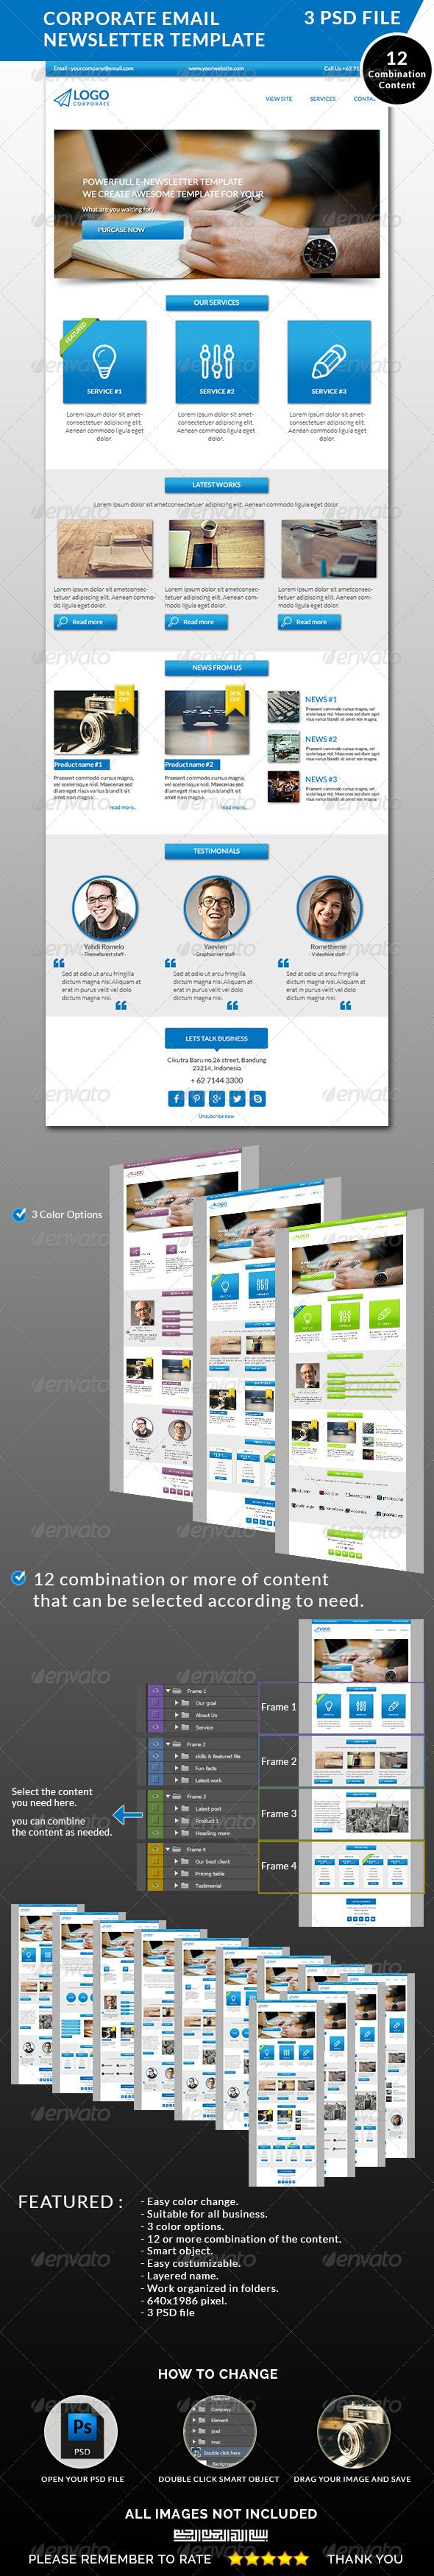 Corporate Email Newsletter Template | Graphicriver.net Market Love ...